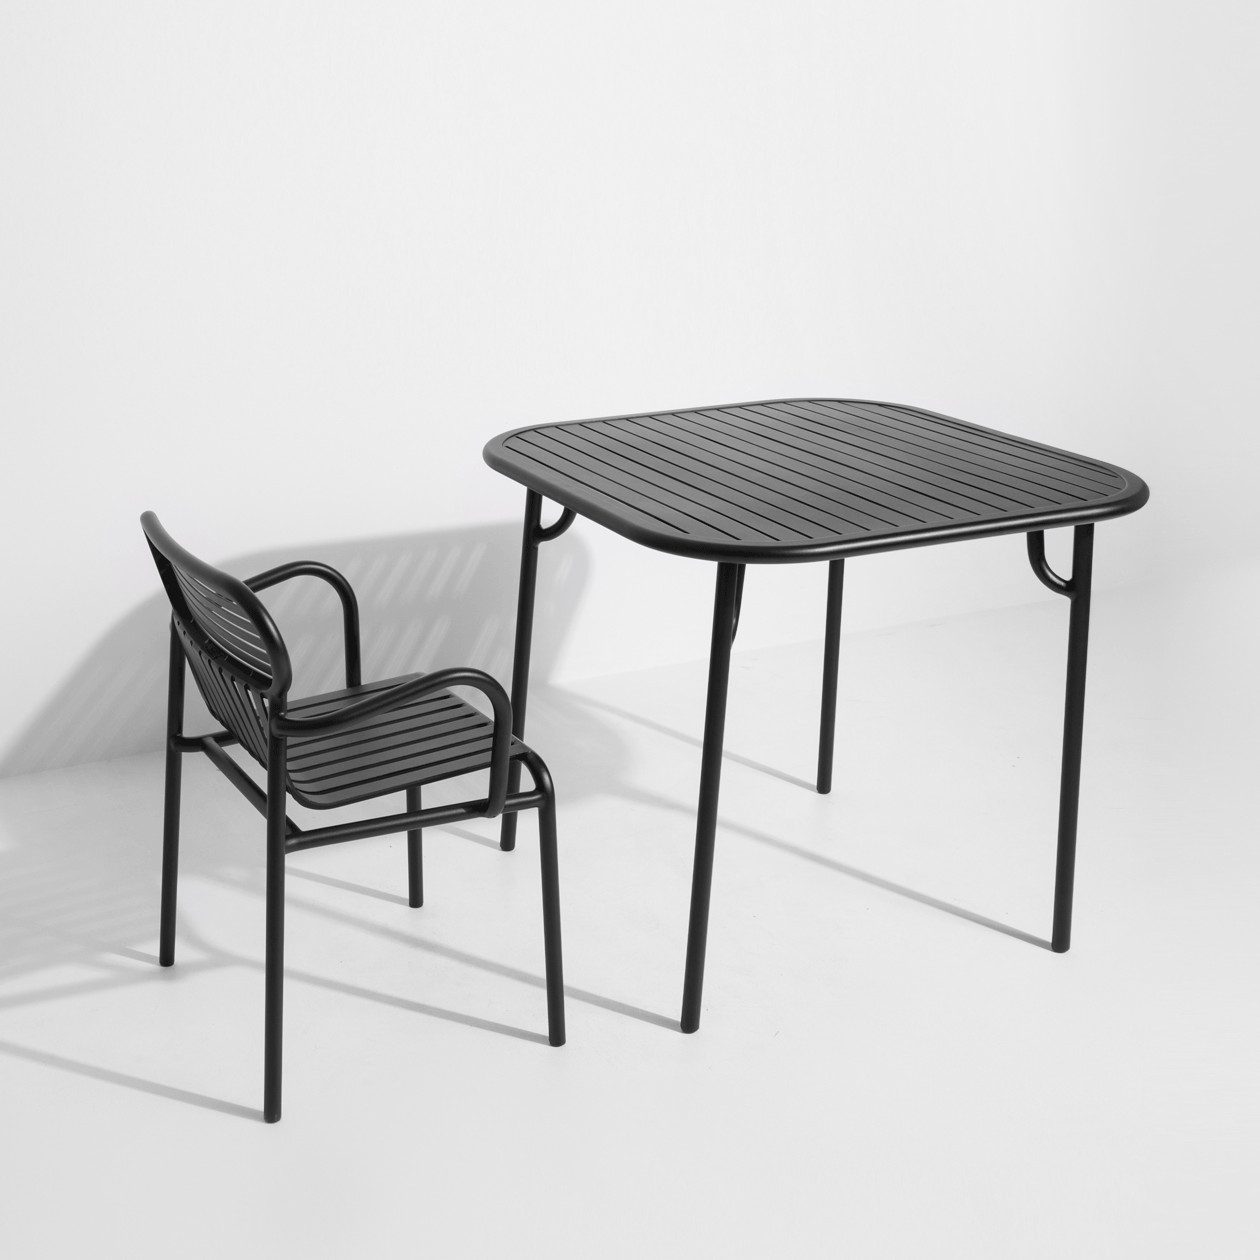 Week-End Square Table - The WEEK-END collection is a full range of outdoor furniture. Designed with practicality in mind, all of the seats are stackable. The Week-End collection is a complete range of outdoor furniture. The oval and circular shape drawn by the backrests makes them a graphic statement. The impact of the horizontal and vertical slats, so similar to stripes, highlights the full and empty spaces, asserting the identity of the collection.  | Matter of Stuff